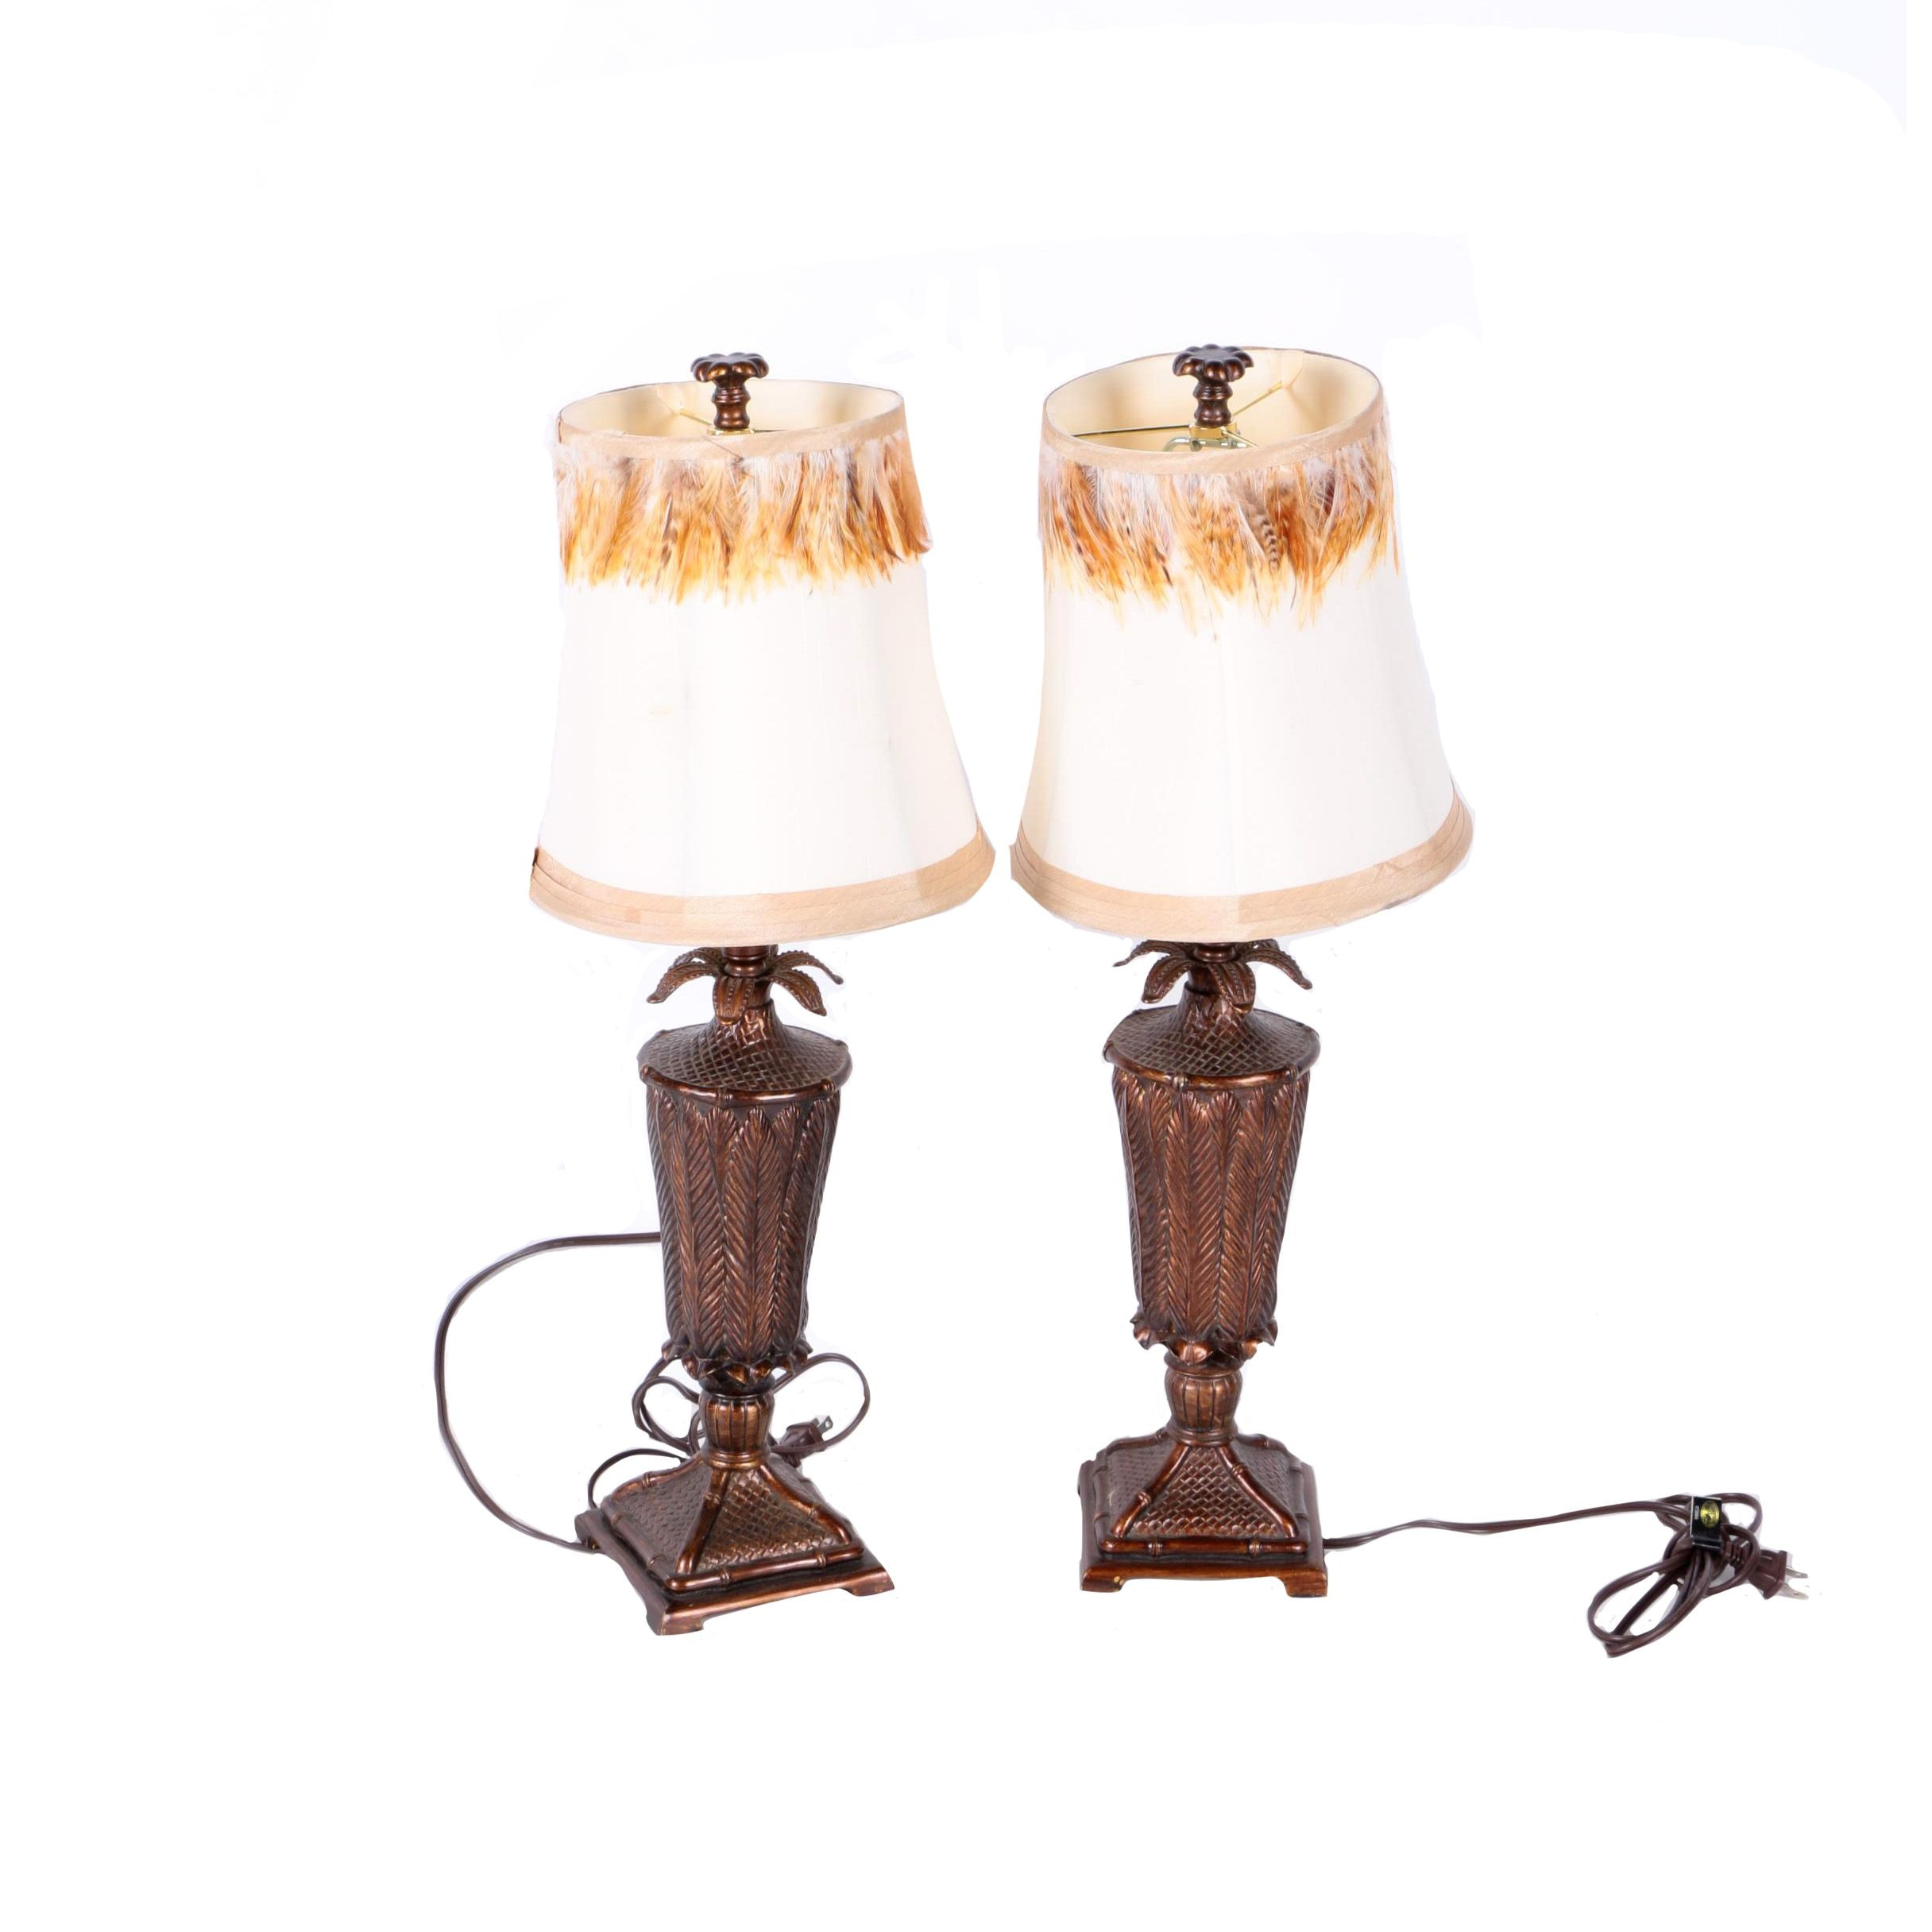 Pair of Table Lamps with Feather Embellished Shades